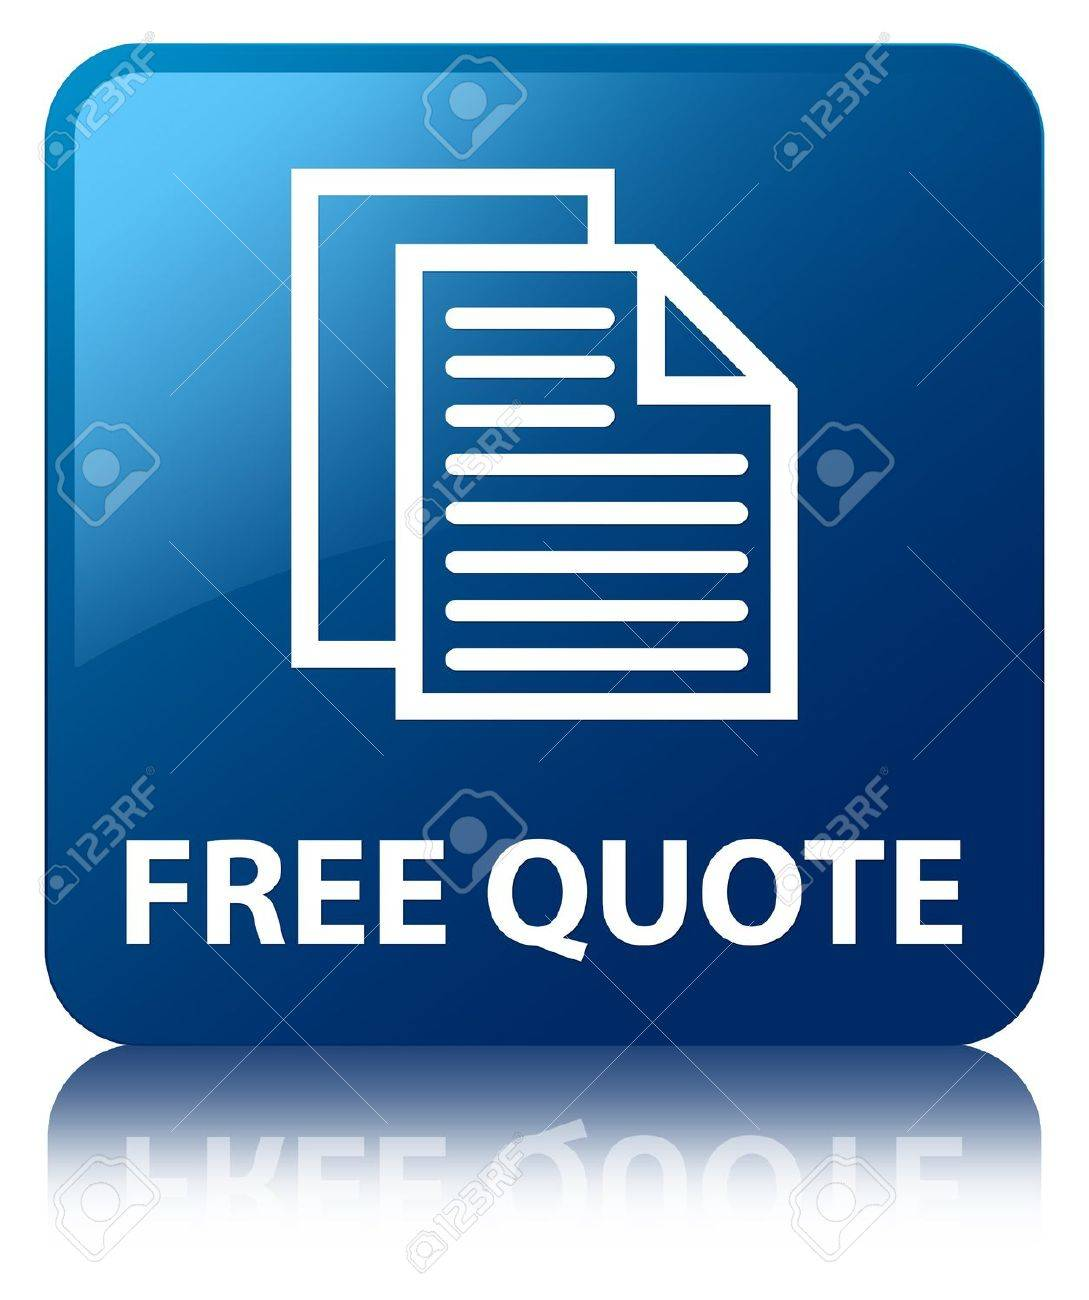 Free Quote Free Quote Glossy Blue Reflected Square Button Stock Photo